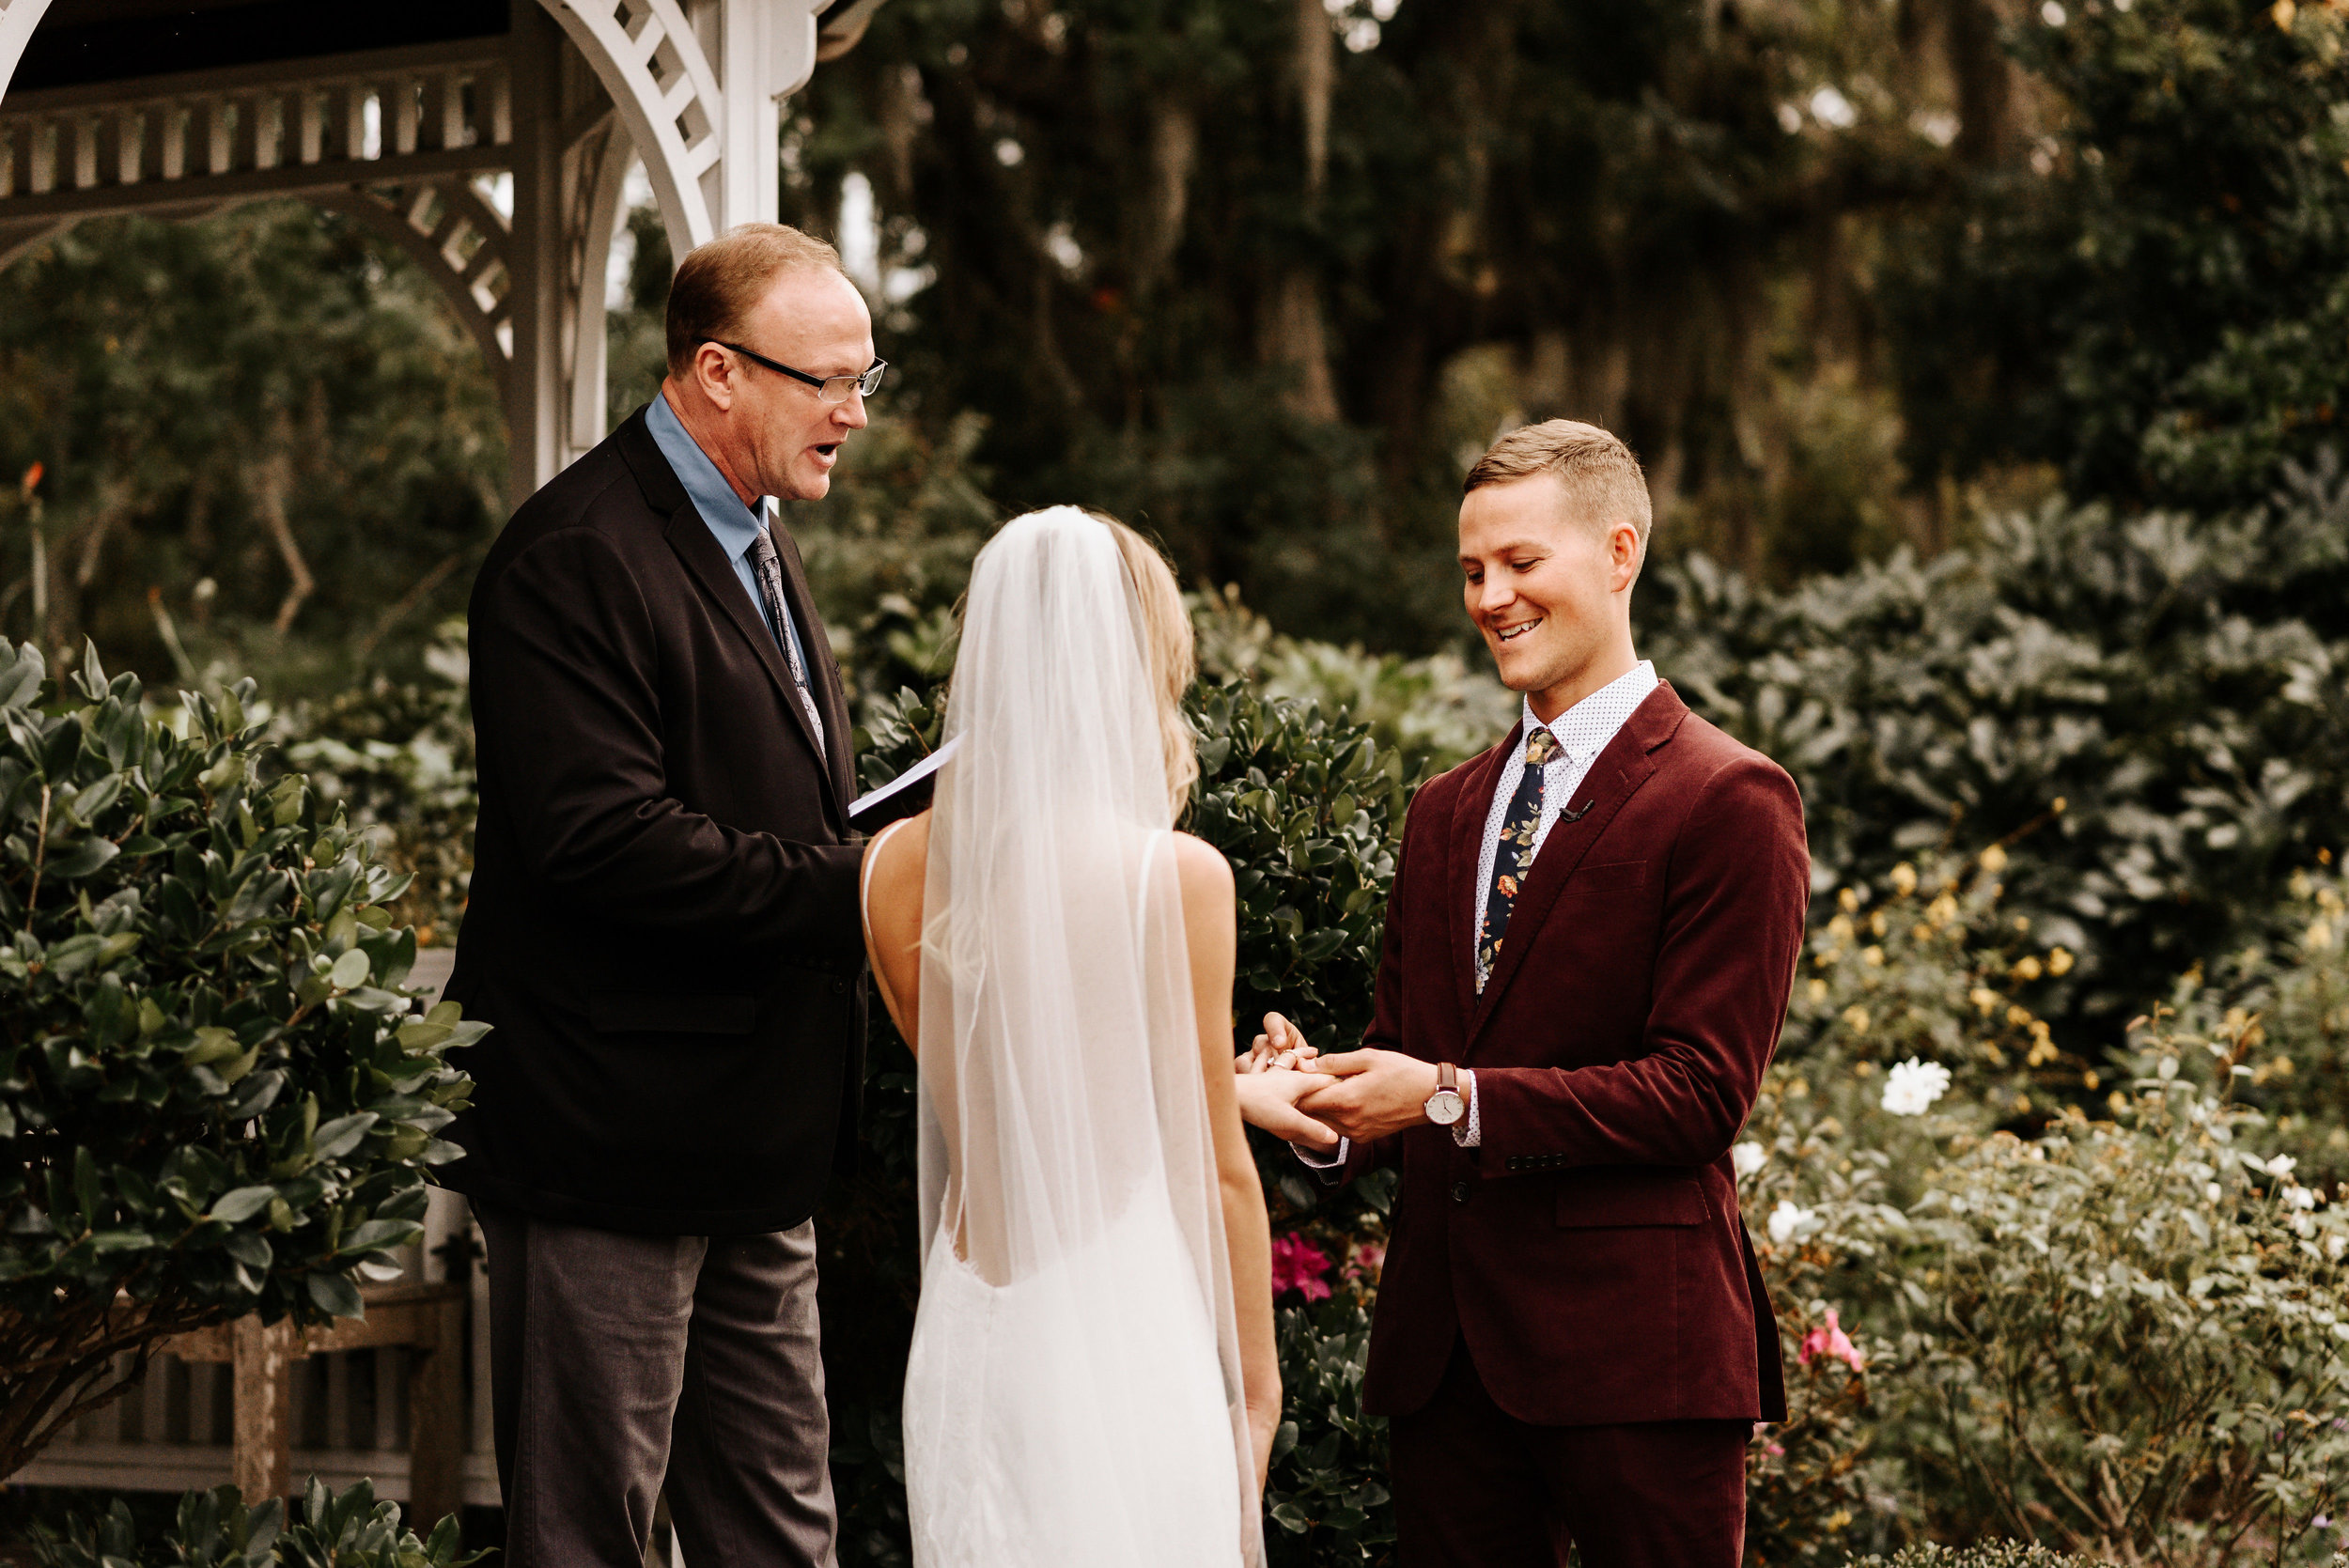 Kourtney_Sean_Savannah_Georgia_Wedding_Wormsloe_Histroic_Site_Coastal_Georgia_Botanical_Gardens_Photography_by_V_7019.jpg